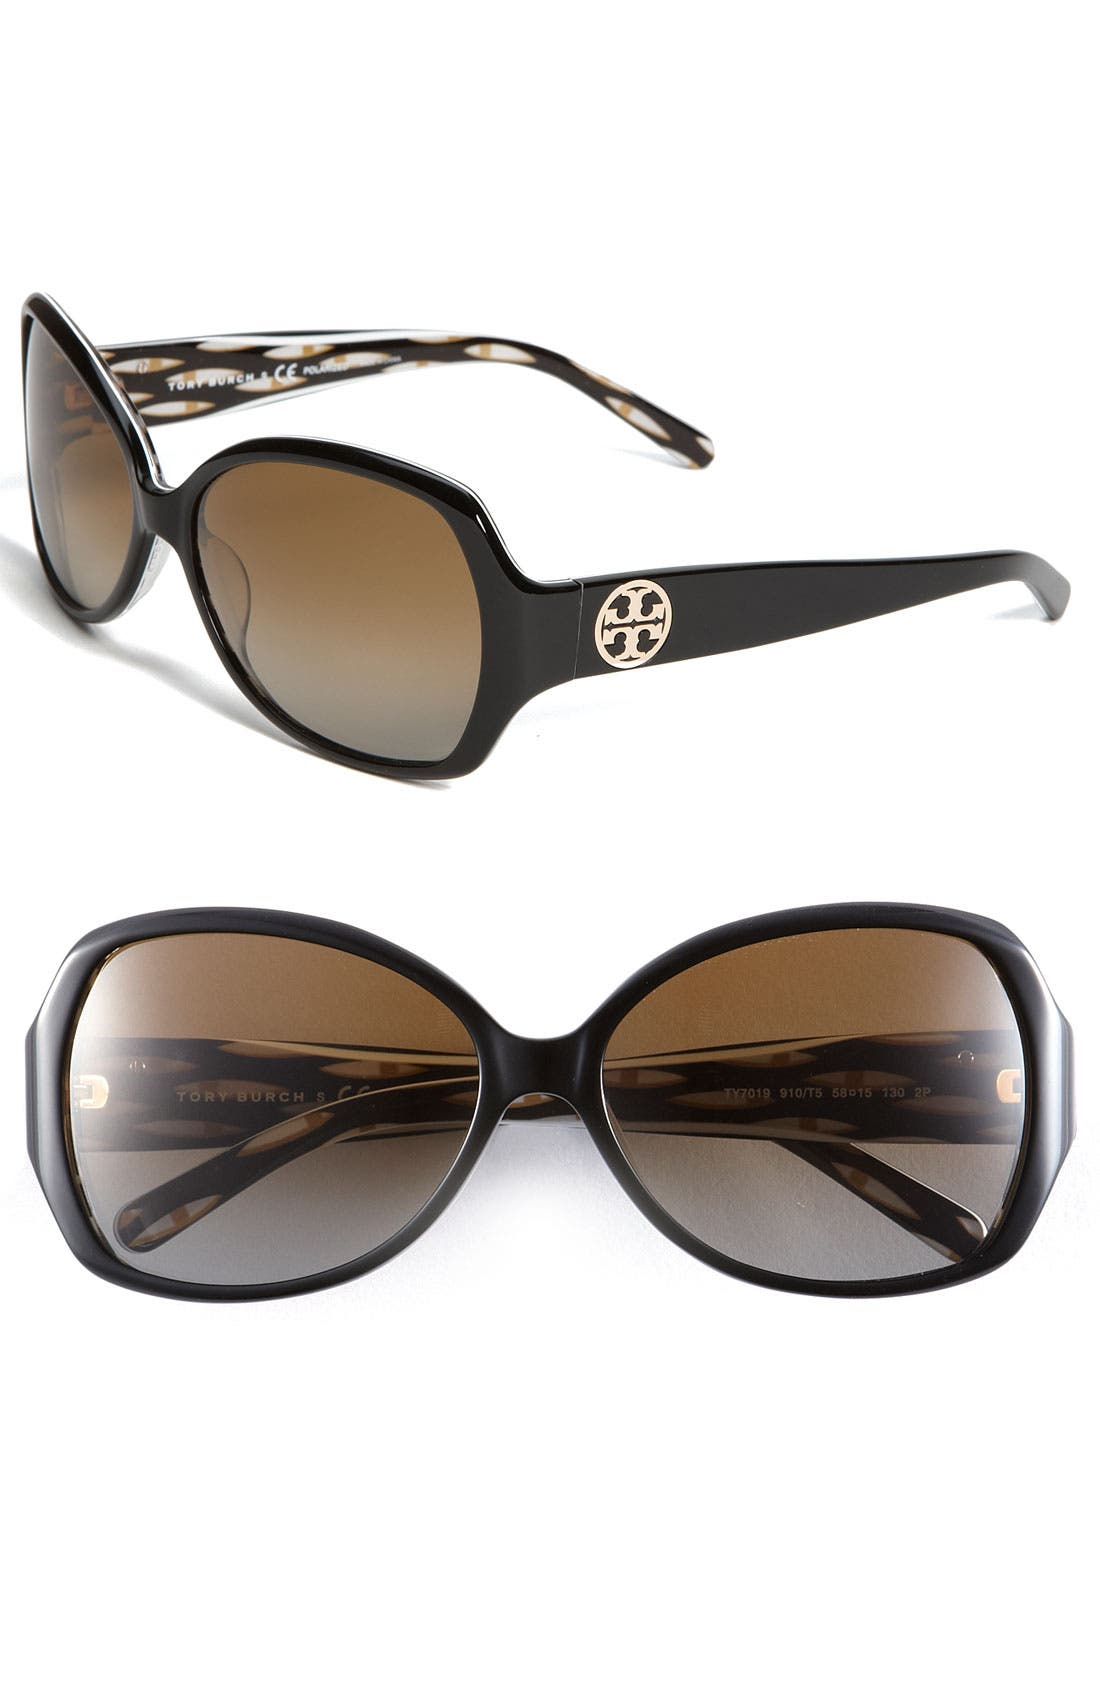 Alternate Image 1 Selected - Tory Burch 'Large' Butterfly 58mm Polarized Sunglasses